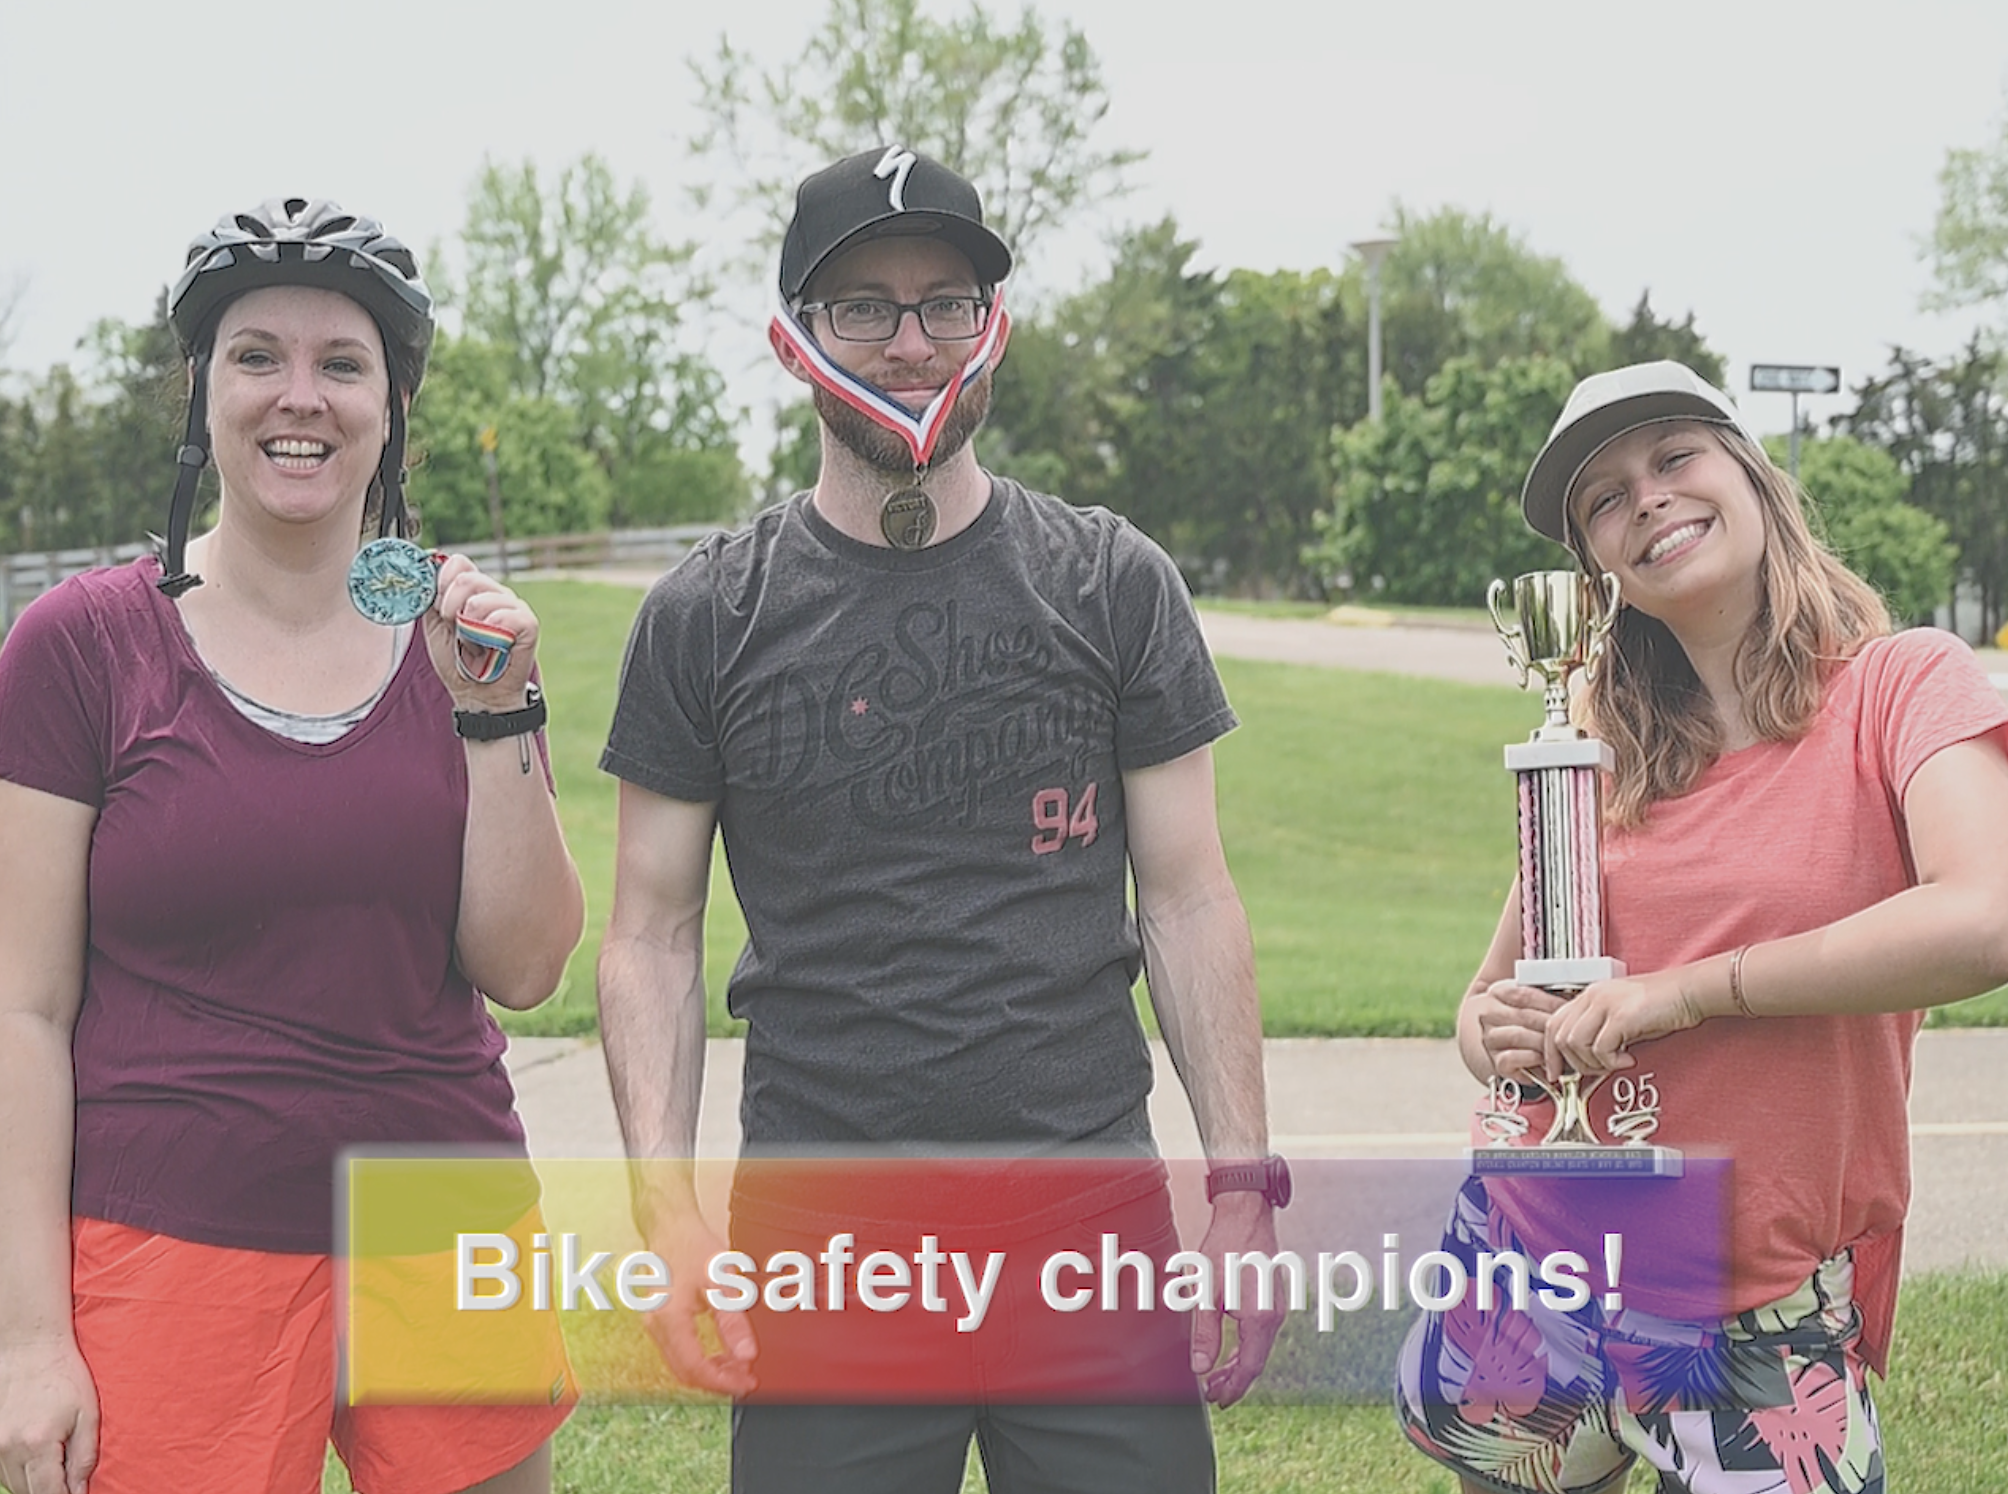 Bike Safety with the Peoria Park District